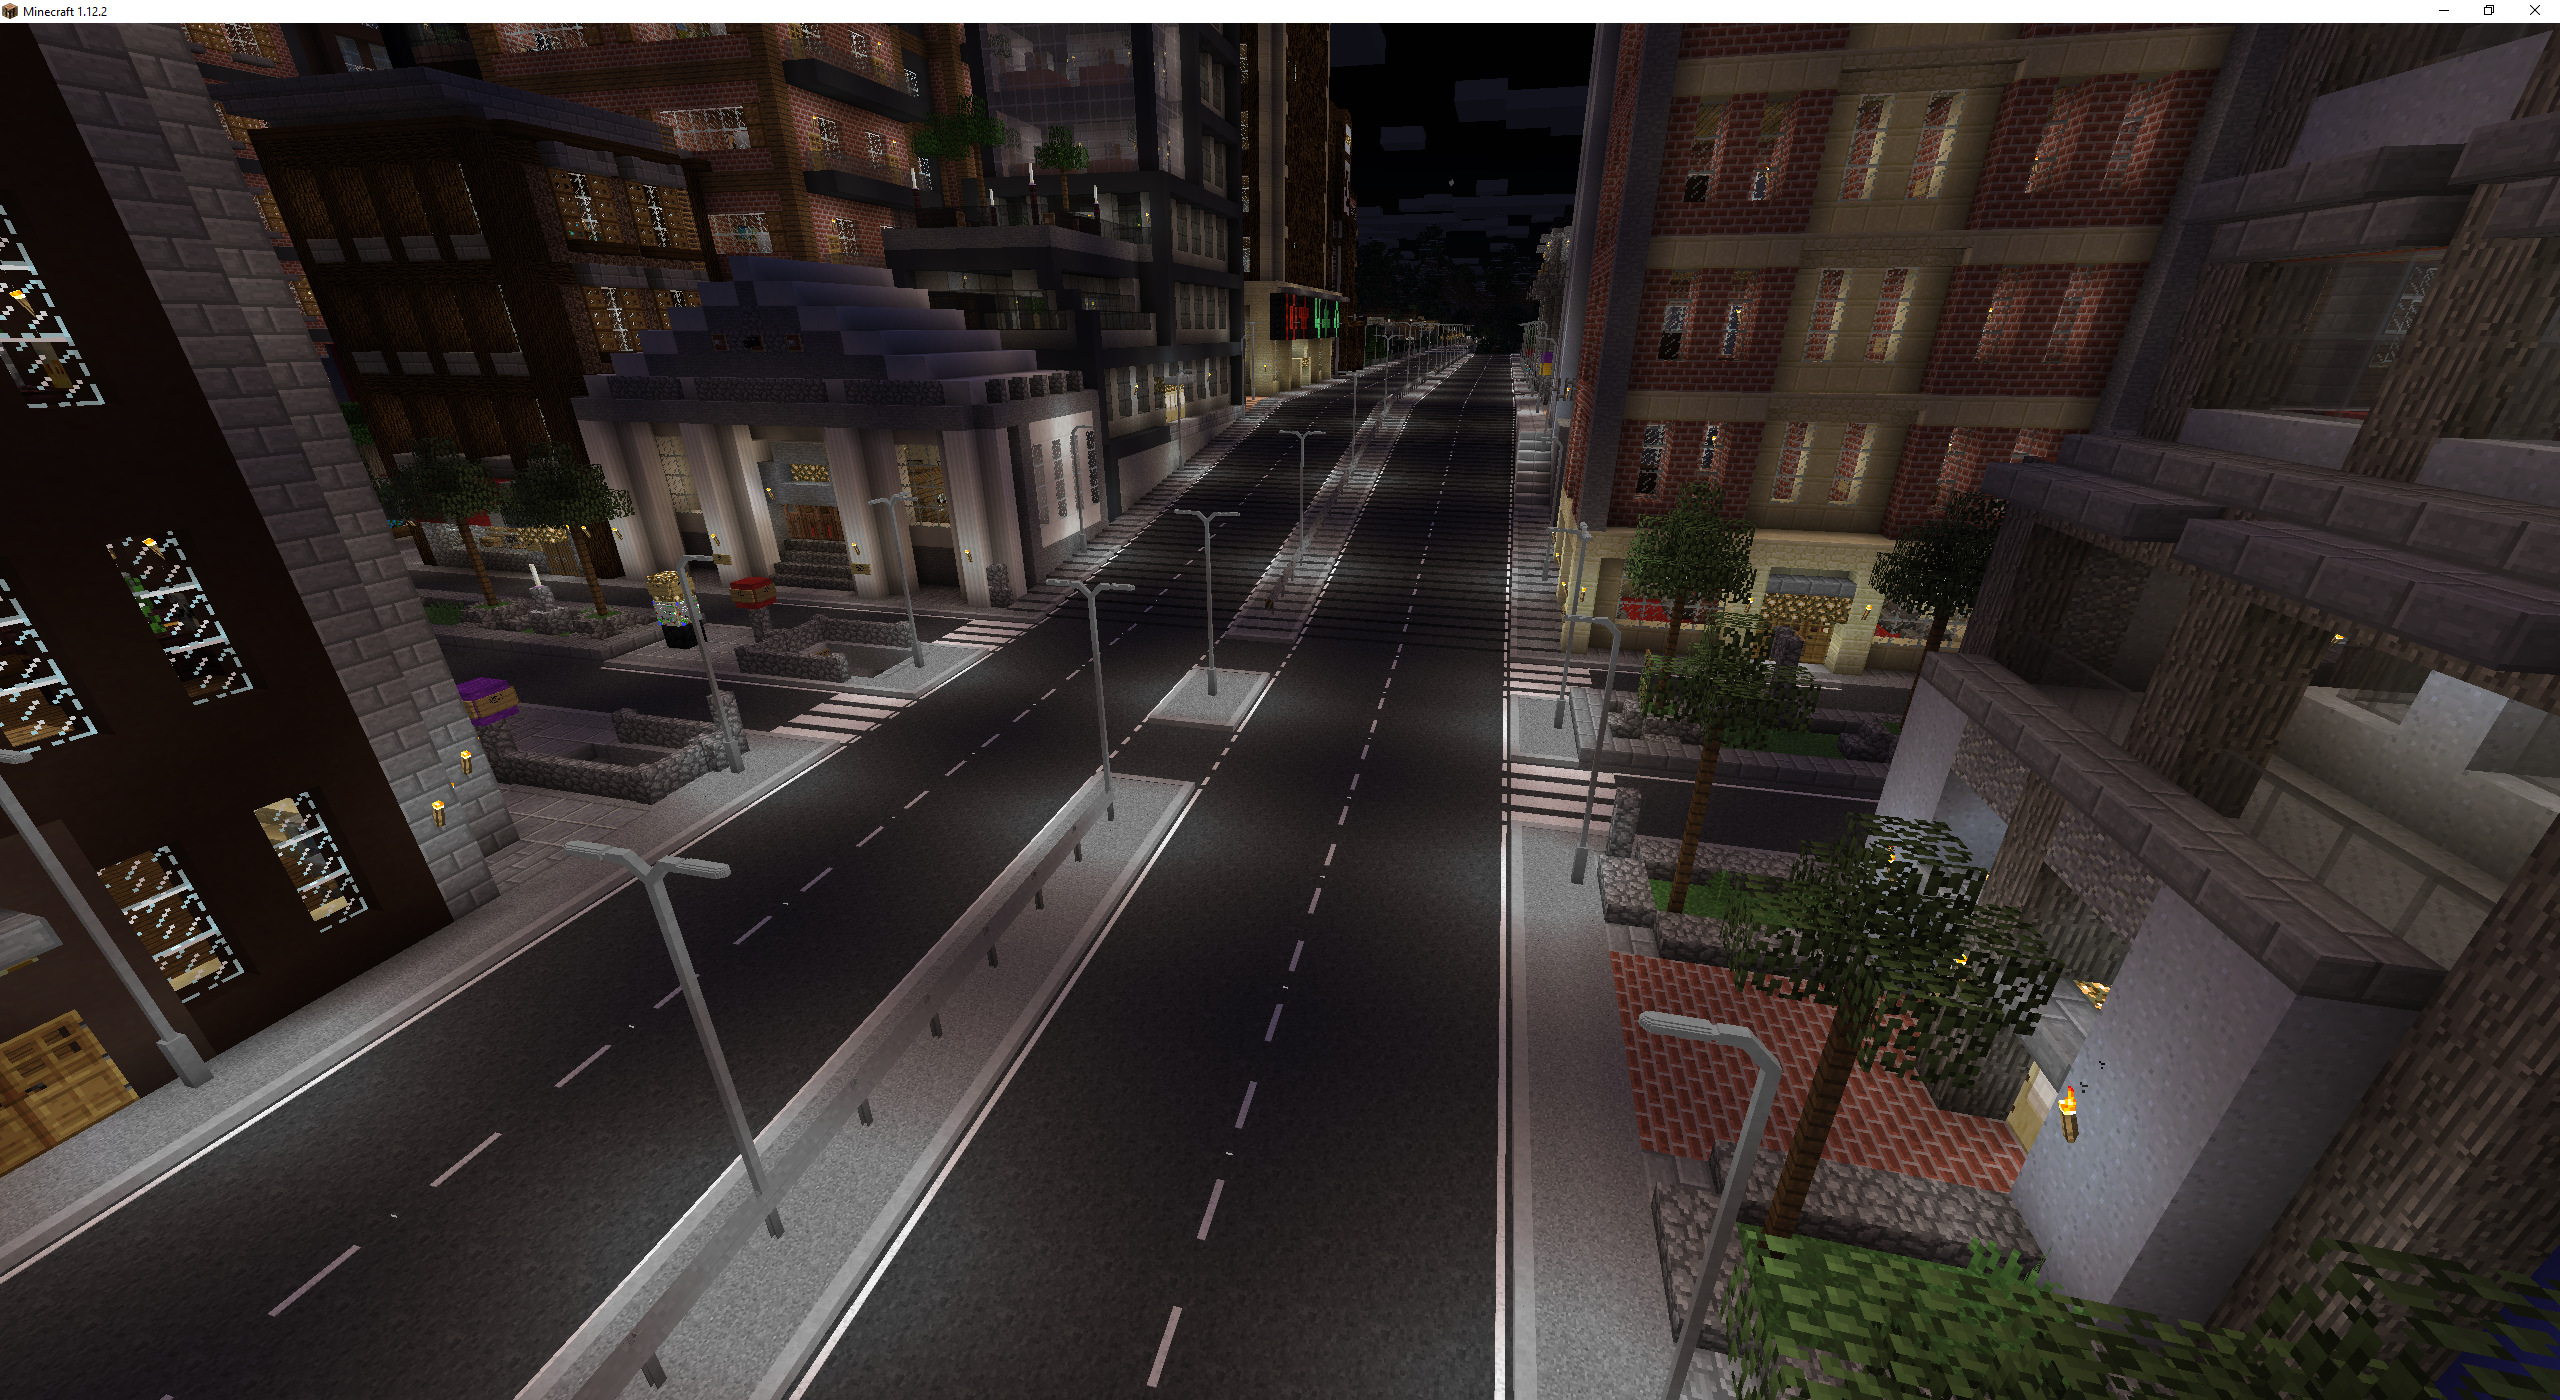 A city road at night